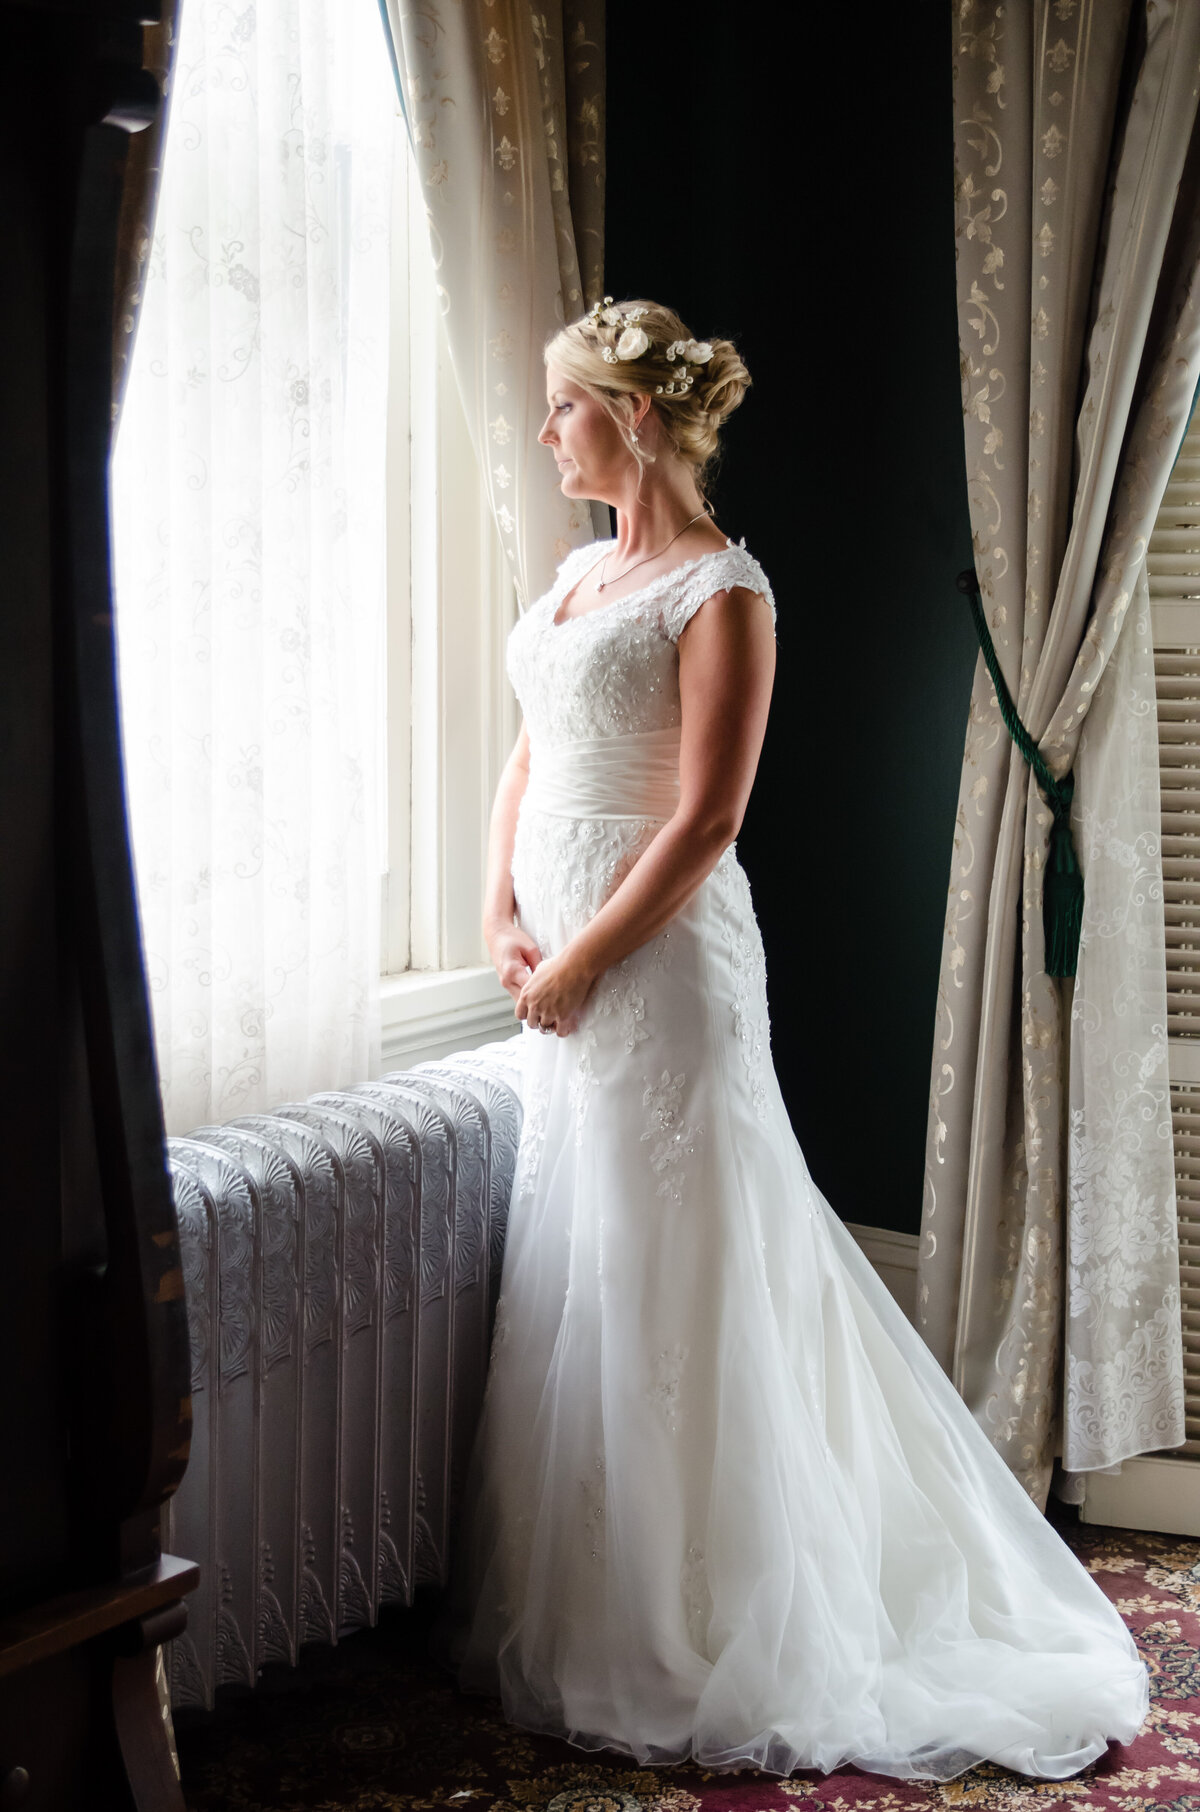 Beautiful bridal portrait photography: Bride gazes out the window of the Columns Hotel on St. Charles in New Orleans, LA